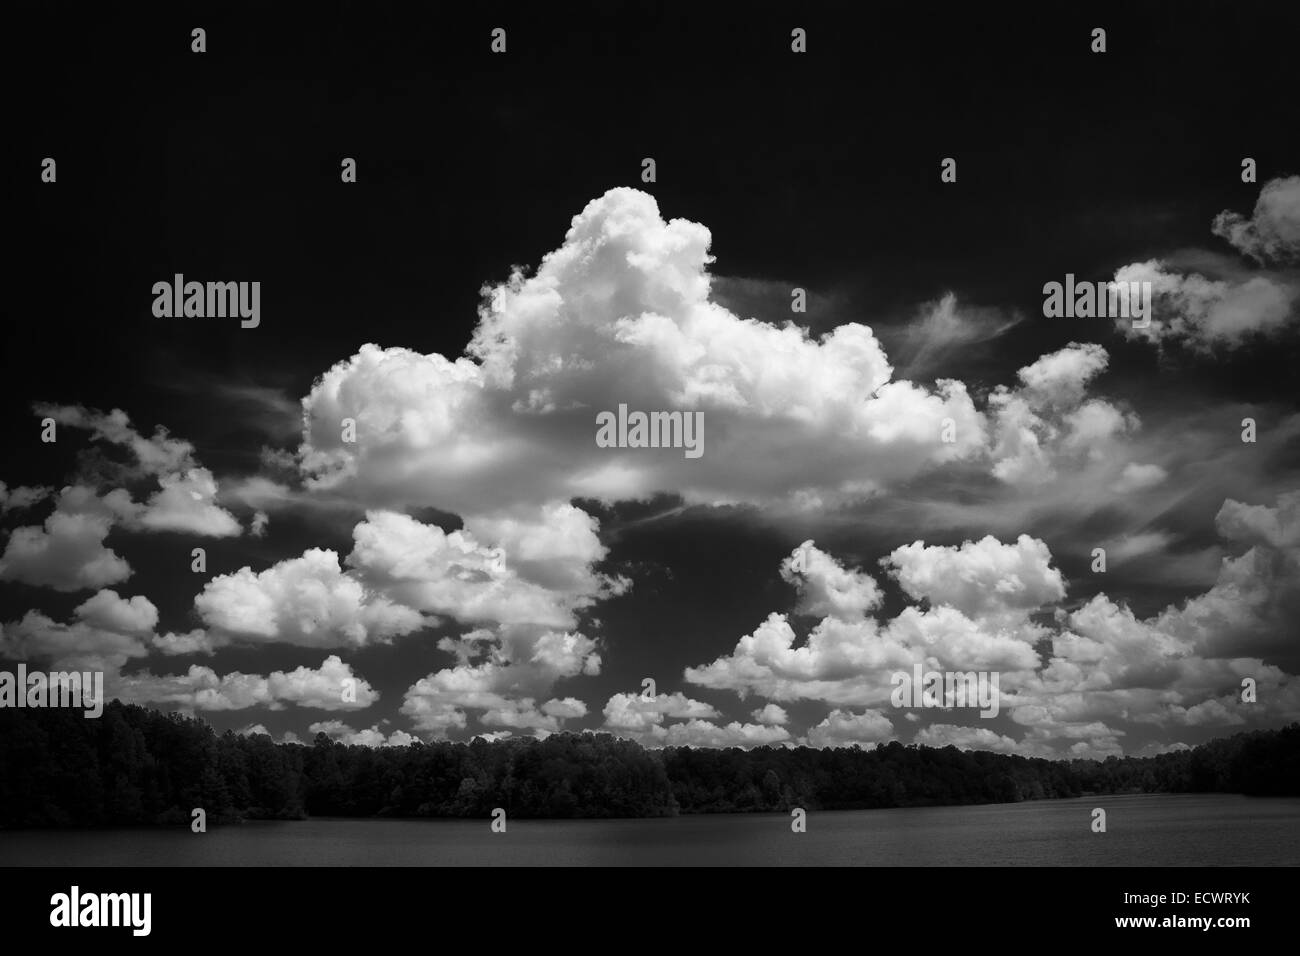 Cloudy Sky over Lake Michaels in Black and White Stock Photo